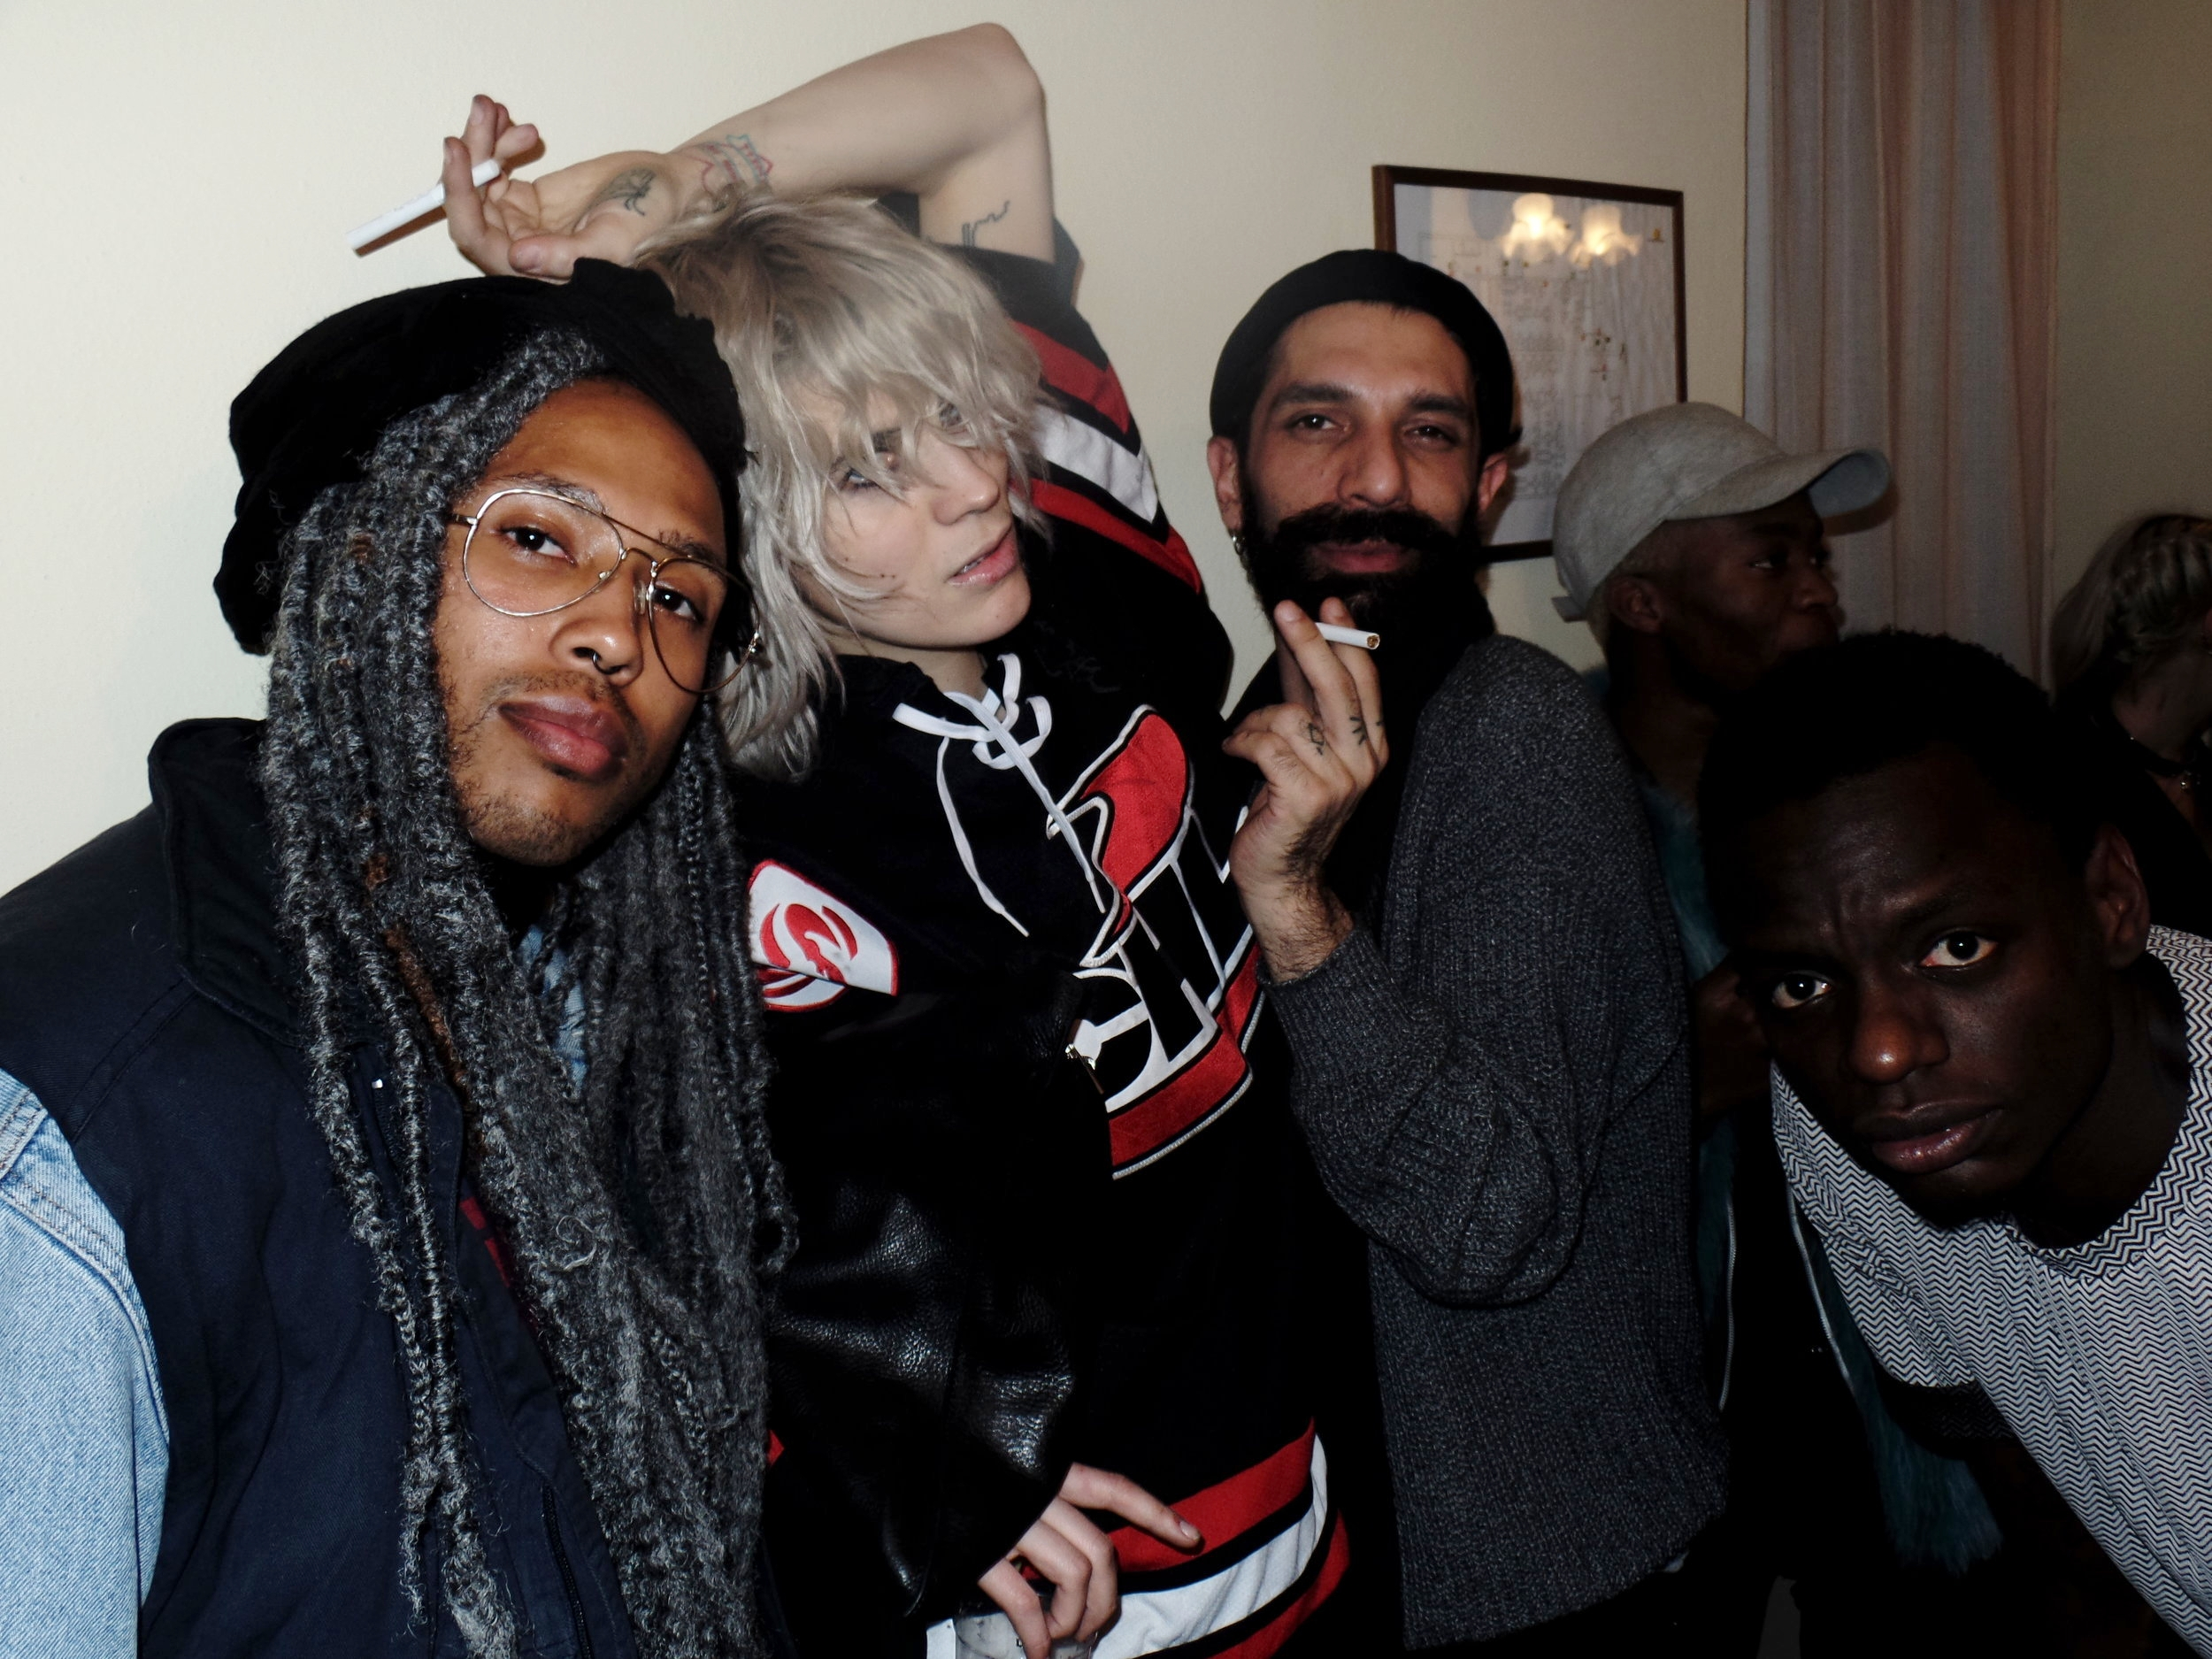 THE MILAN PARTY SCENE IS ON A WHOLE DIFFERENT LEVEL. DOPE FASHION, GRUNGY AF.